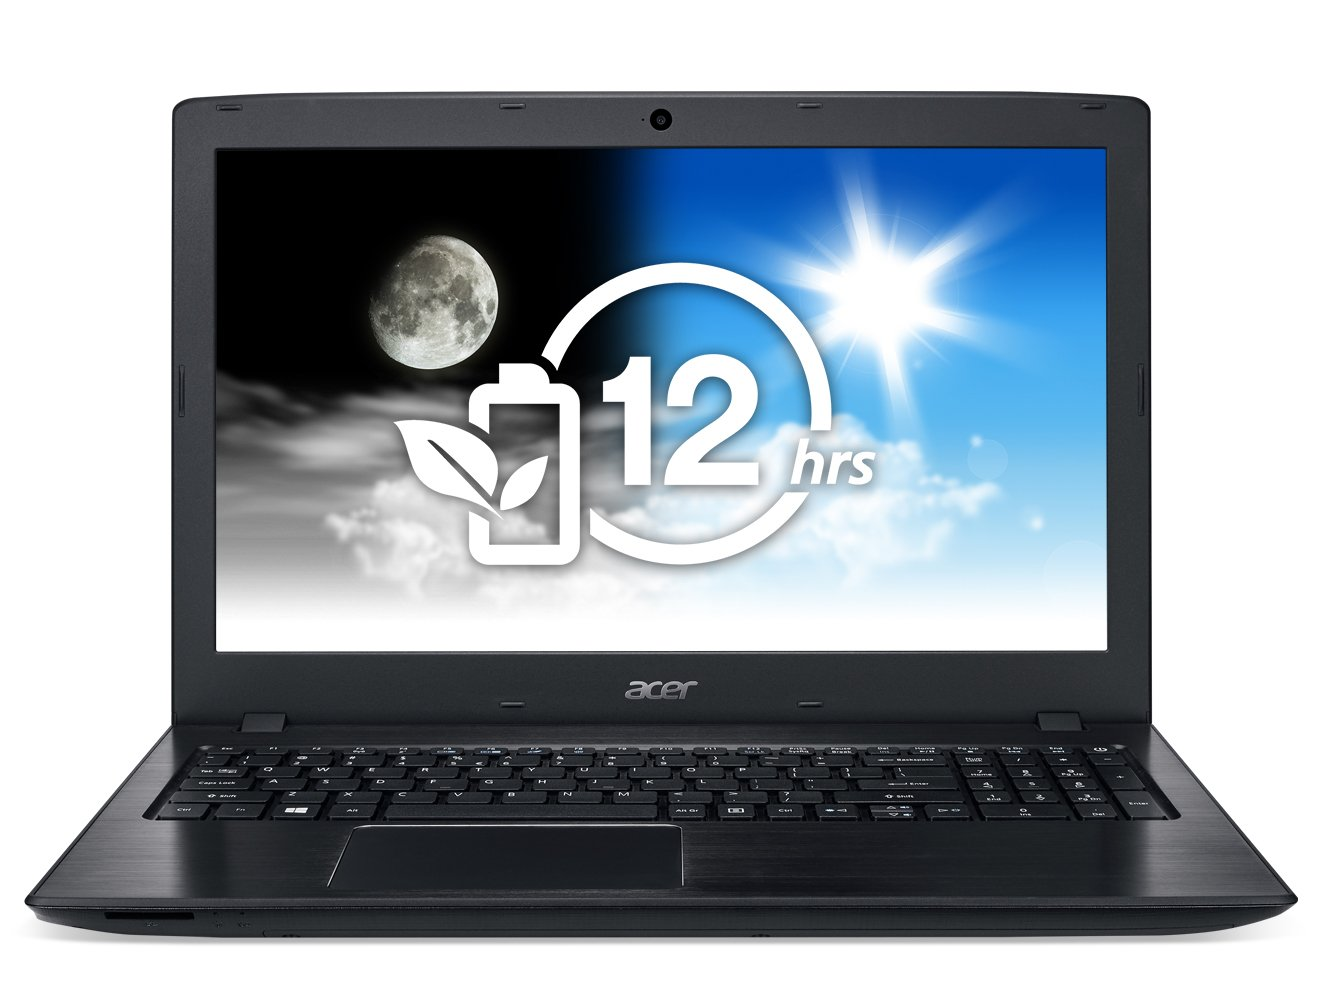 Acer Aspire E 15 E5-575G-57D4 15.6-Inches Full HD Notebook (7th Gen Intel Core i5-7200U, GeForce 940MX, 8GB DDR4 SDRAM, 256GB SSD, Windows 10 Home), Obsidian Black by Acer (Image #2)